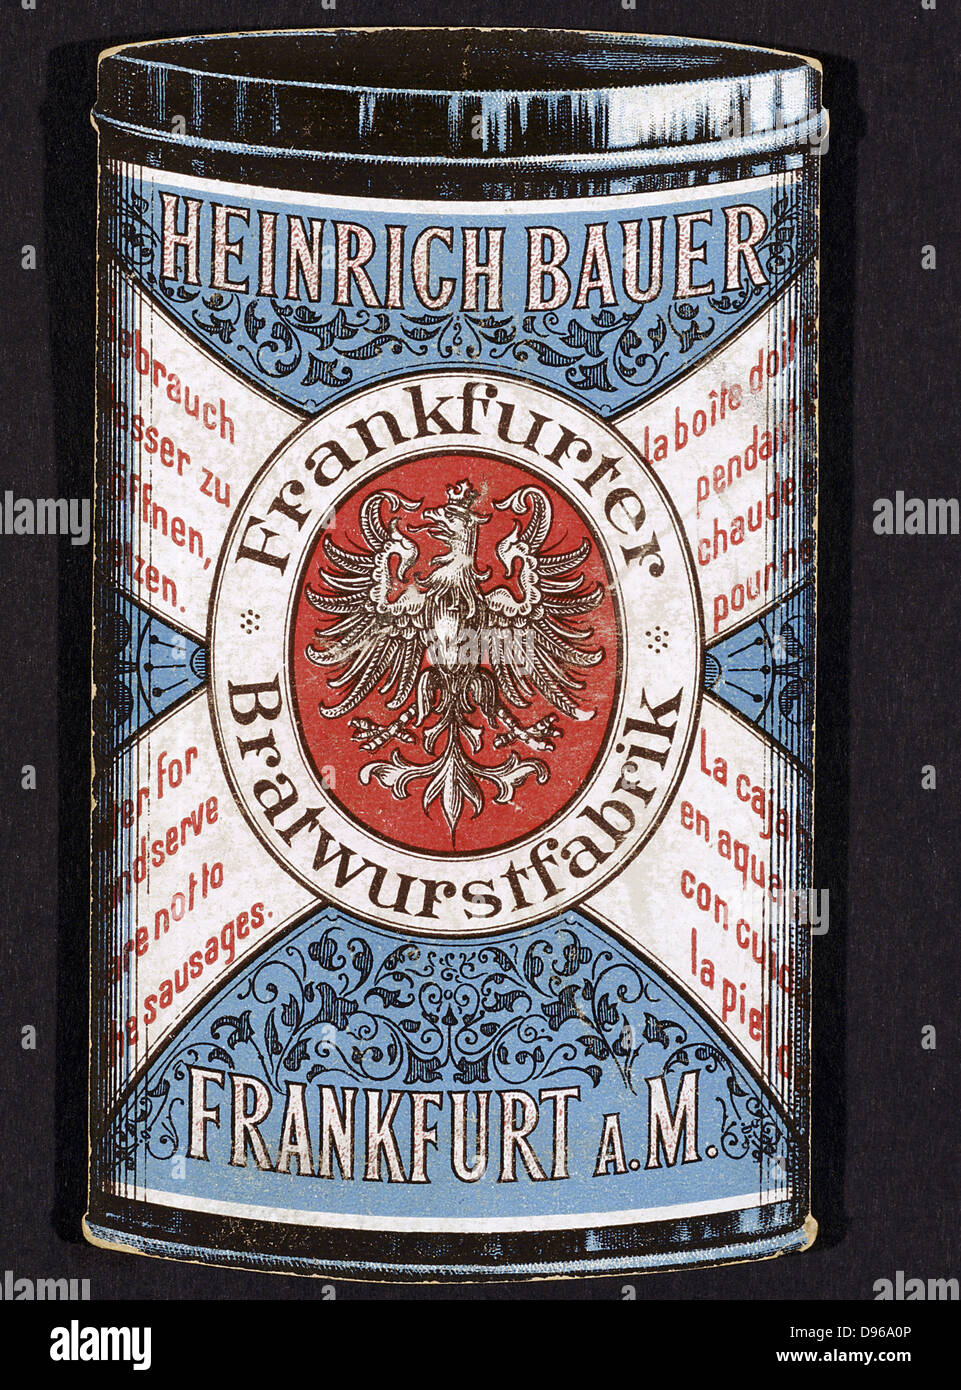 Obverse of trade card for tinned Frankfurters produced by Heinrich Bauer of Frankfurt am Main. Germany, c1895. - Stock Image